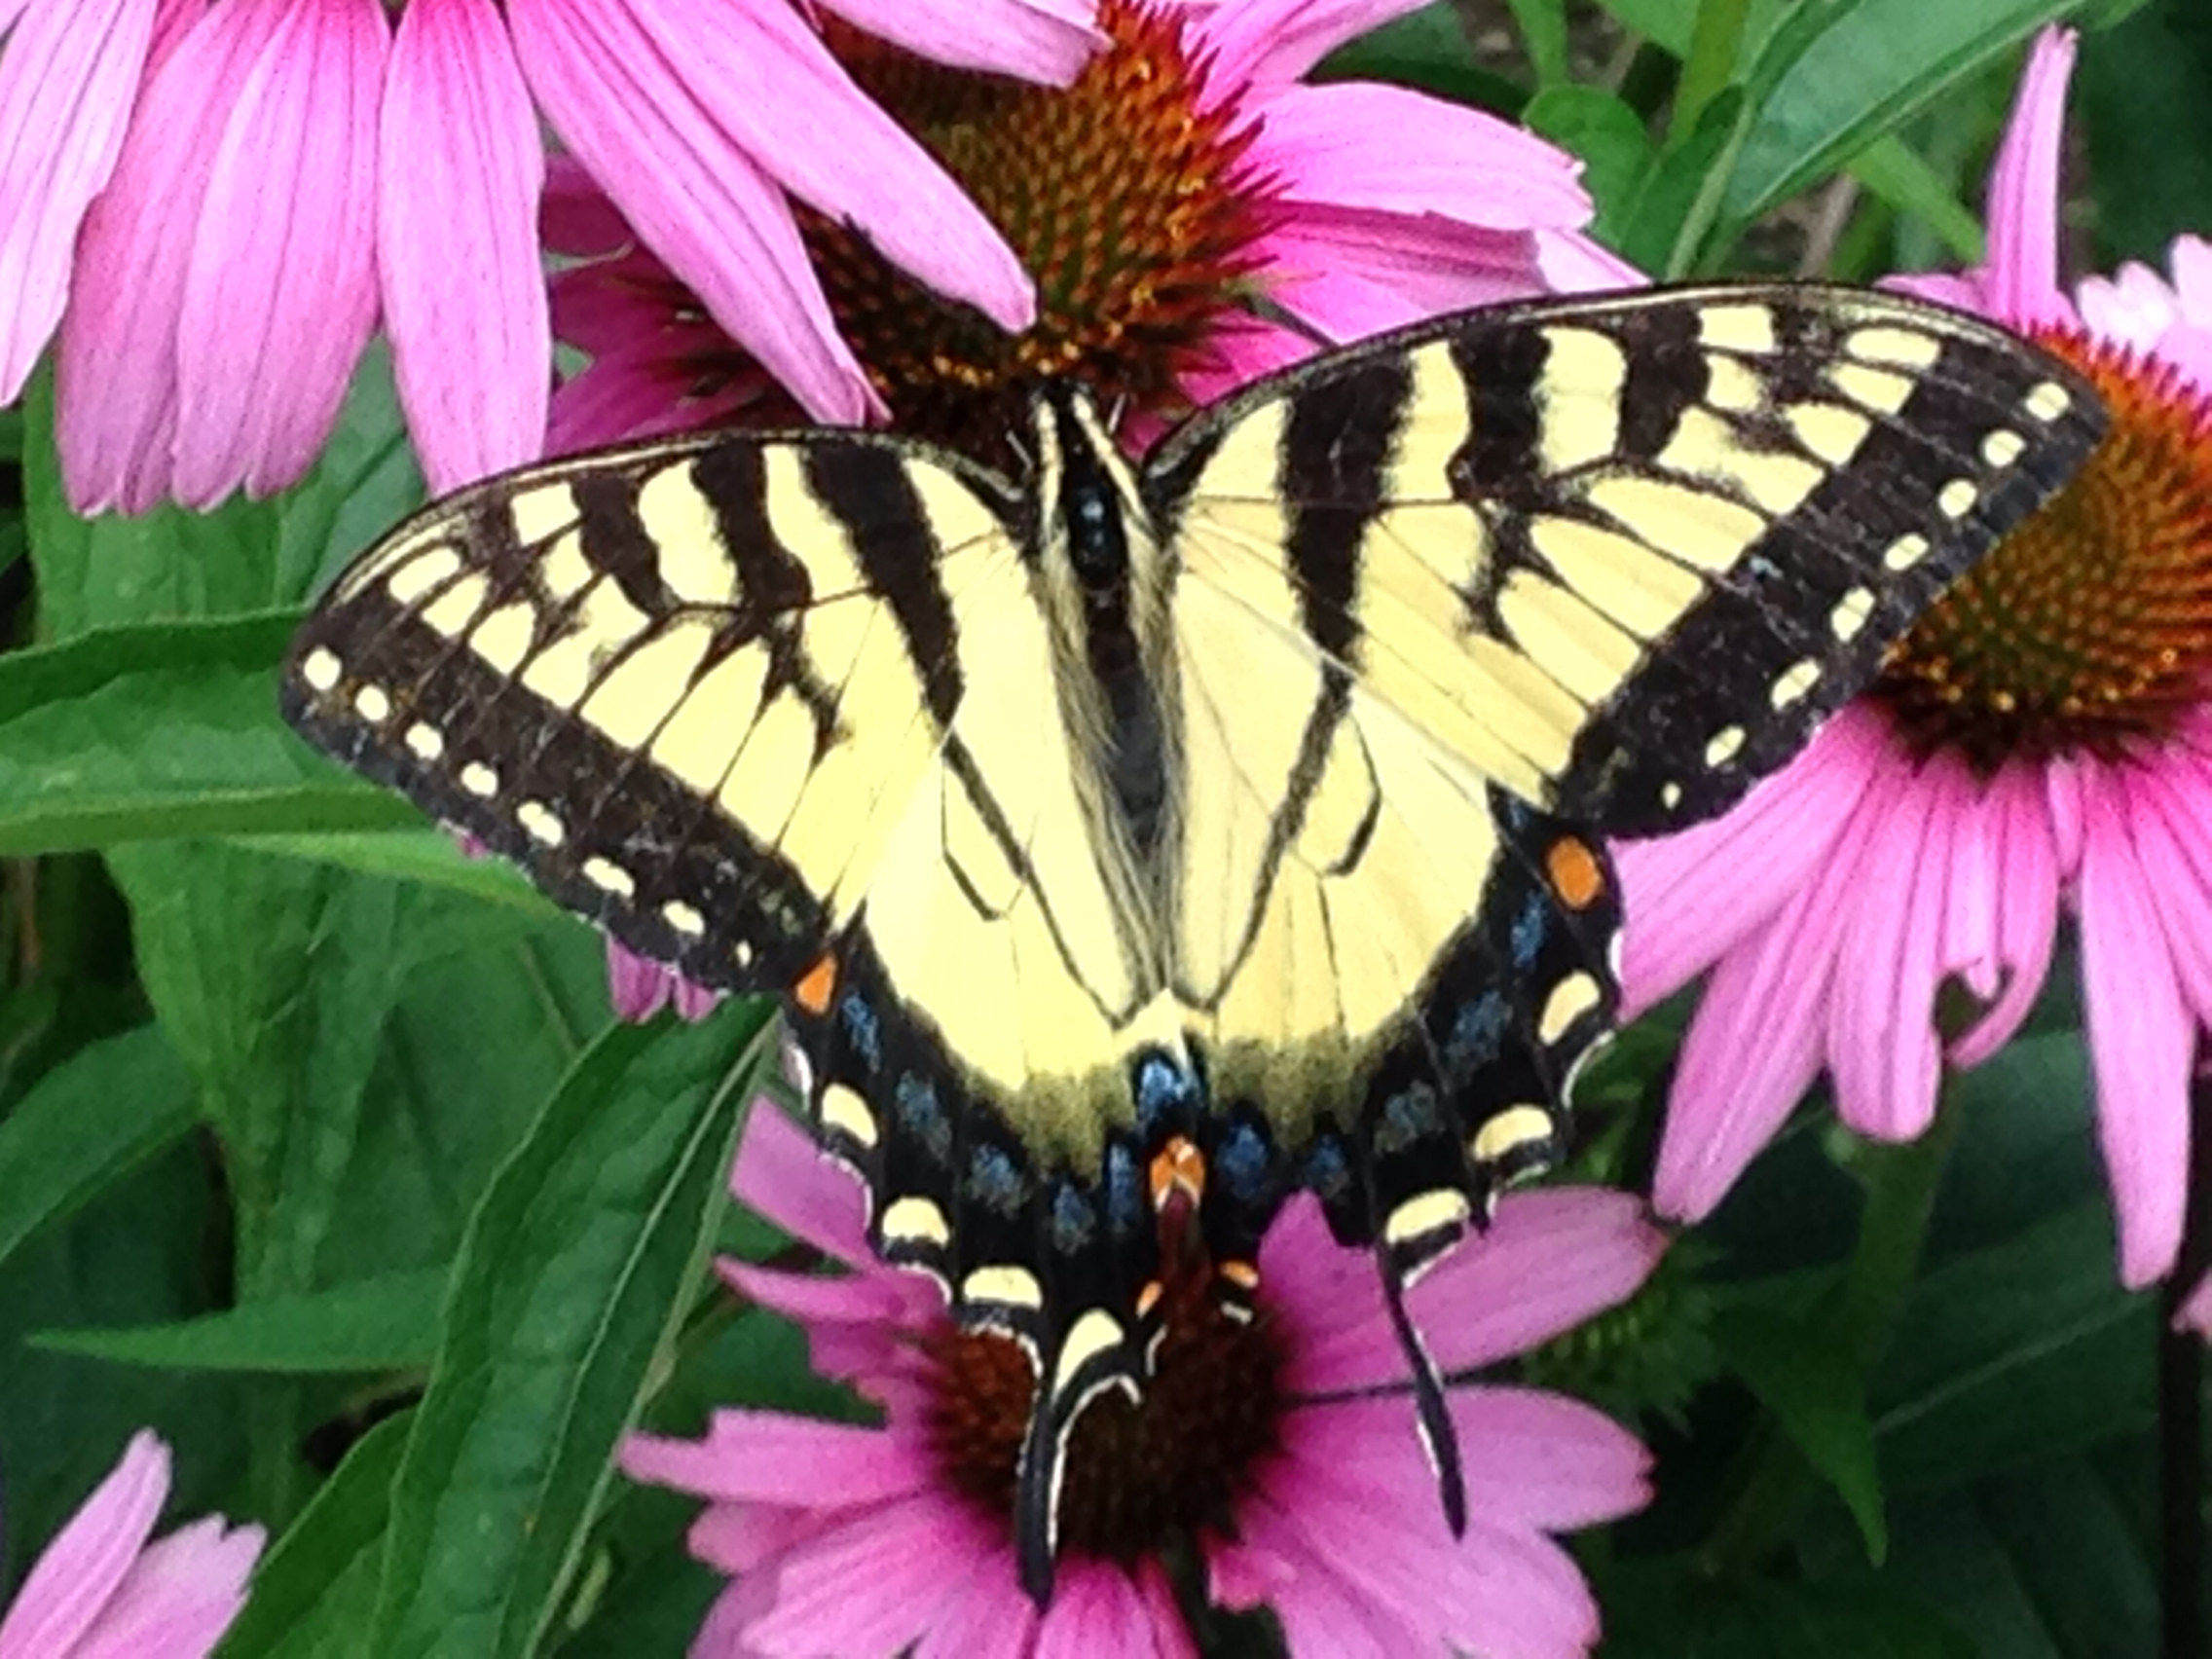 Eastern Tiger Swallowtail on Echinacea